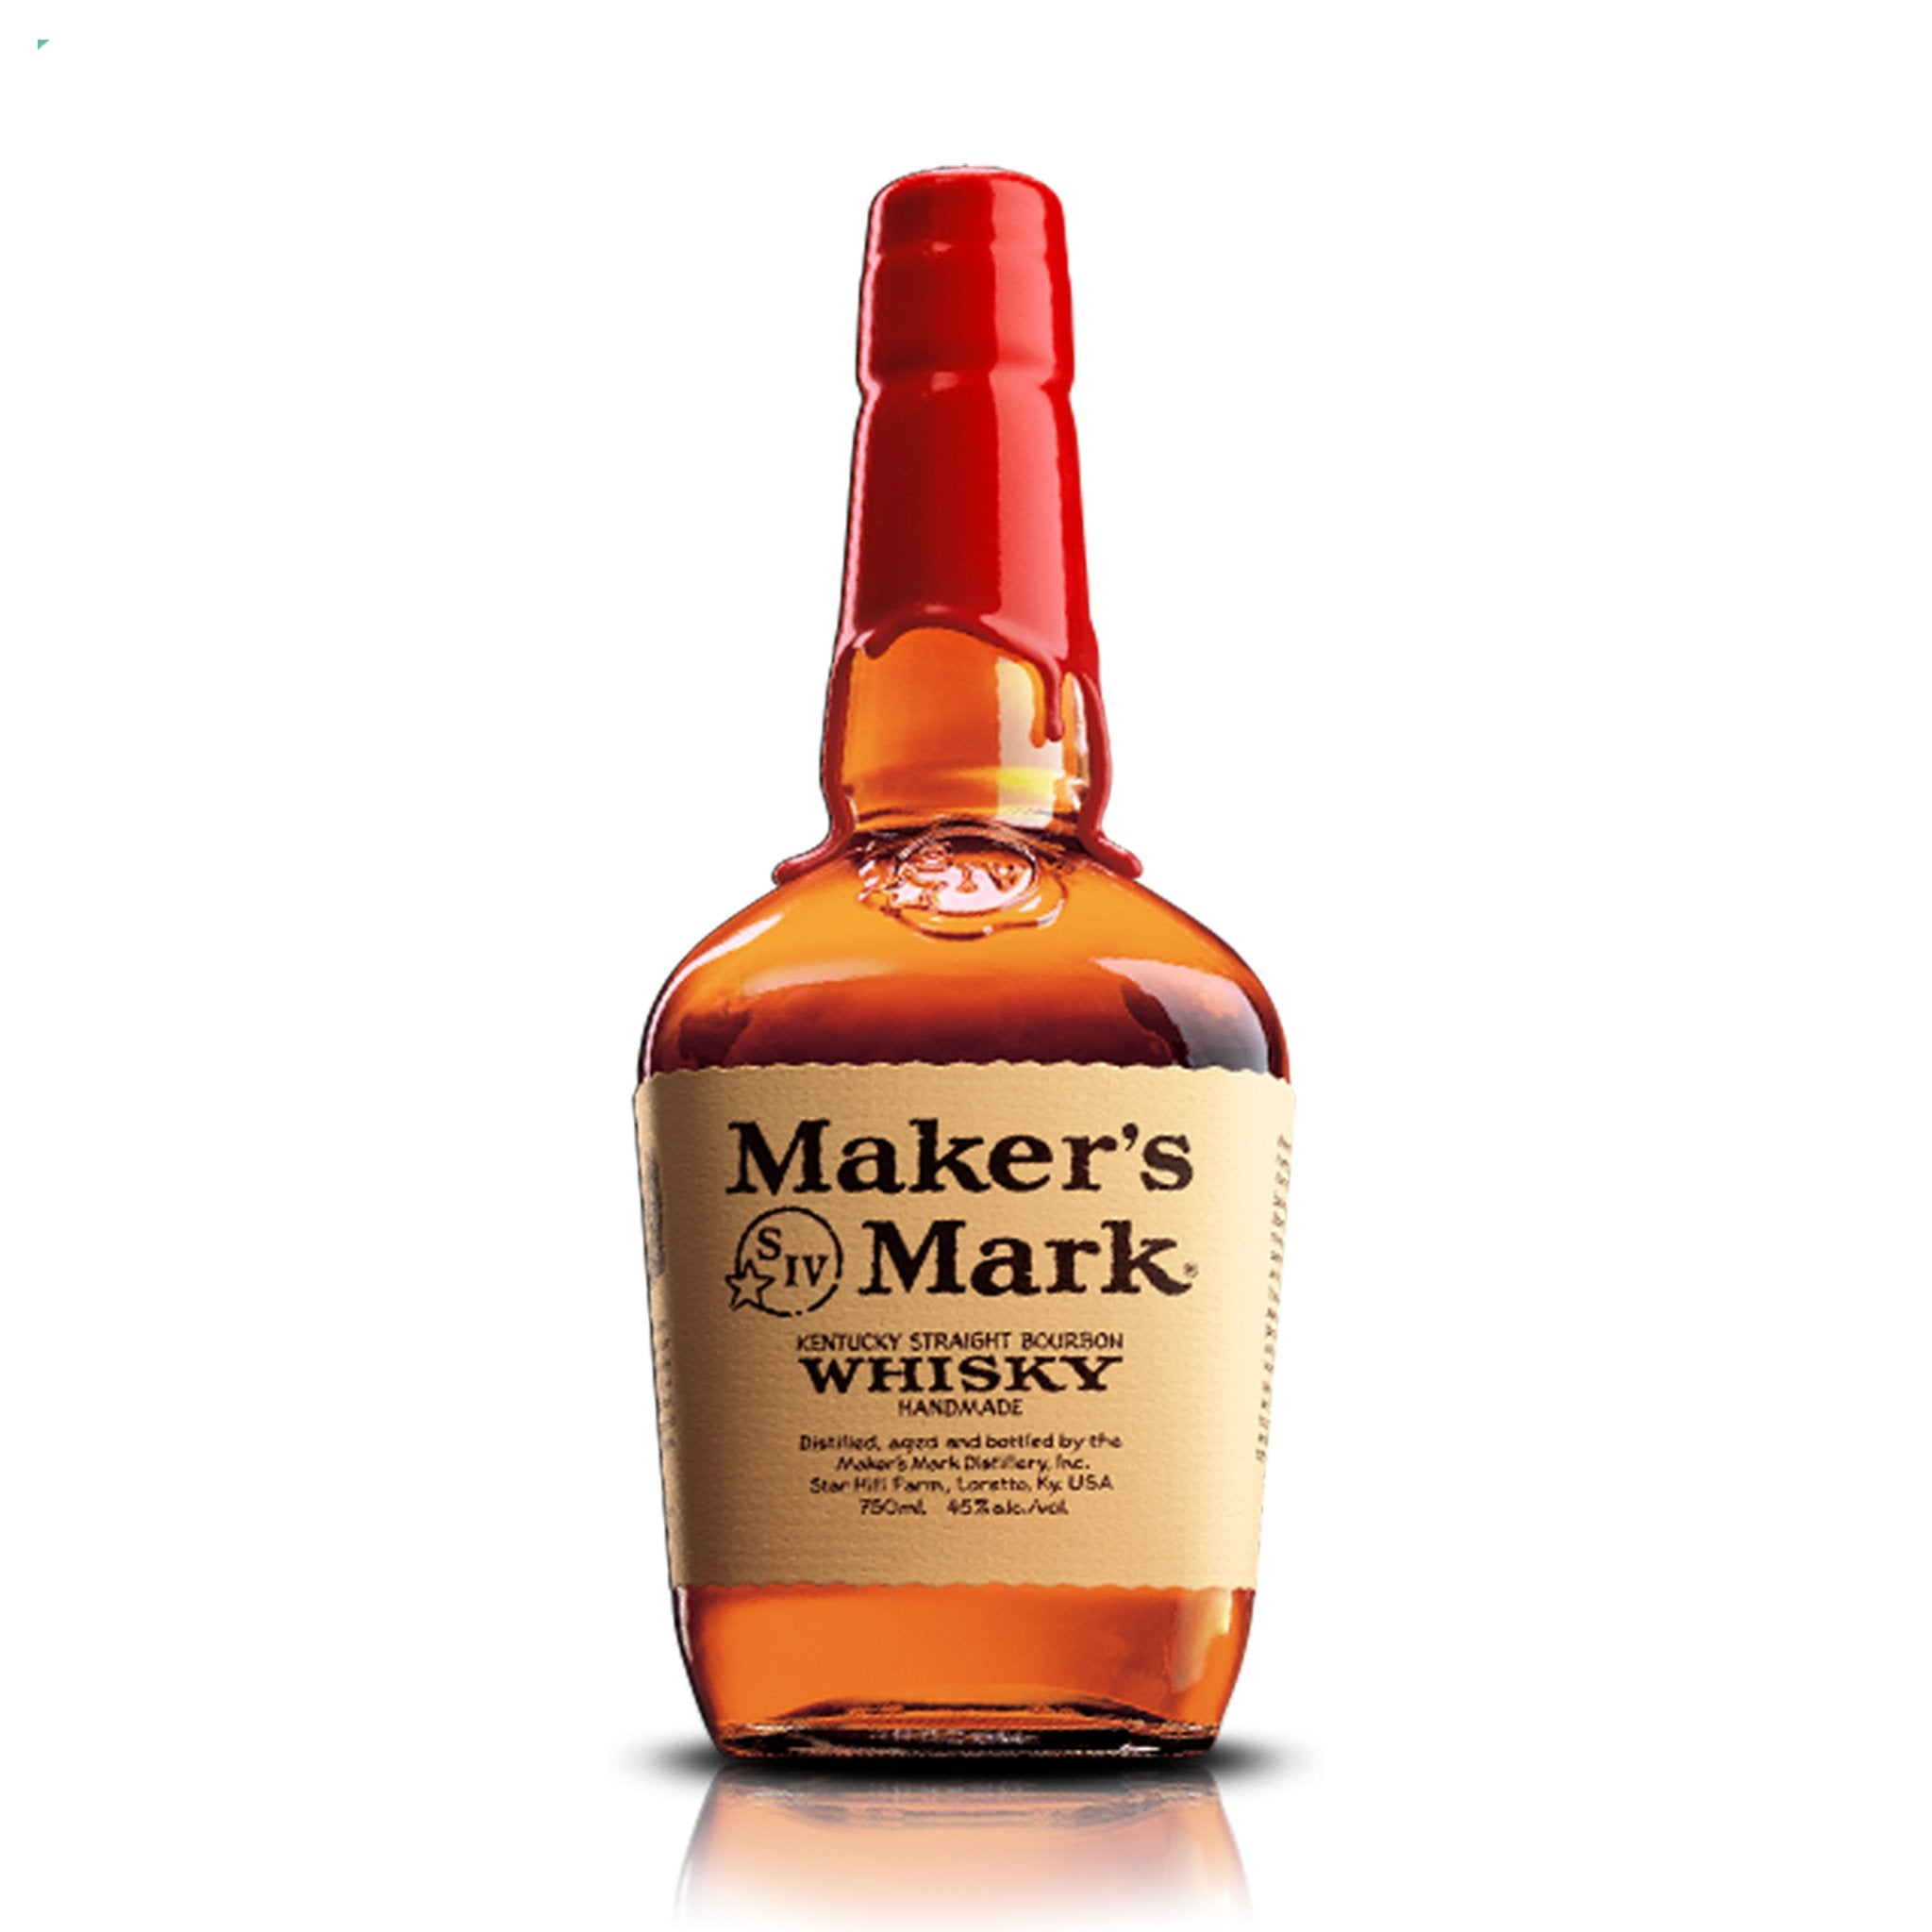 Makers Mark Whisky 45% ABV, Food, Beverages & Tobacco by Drinks Shop